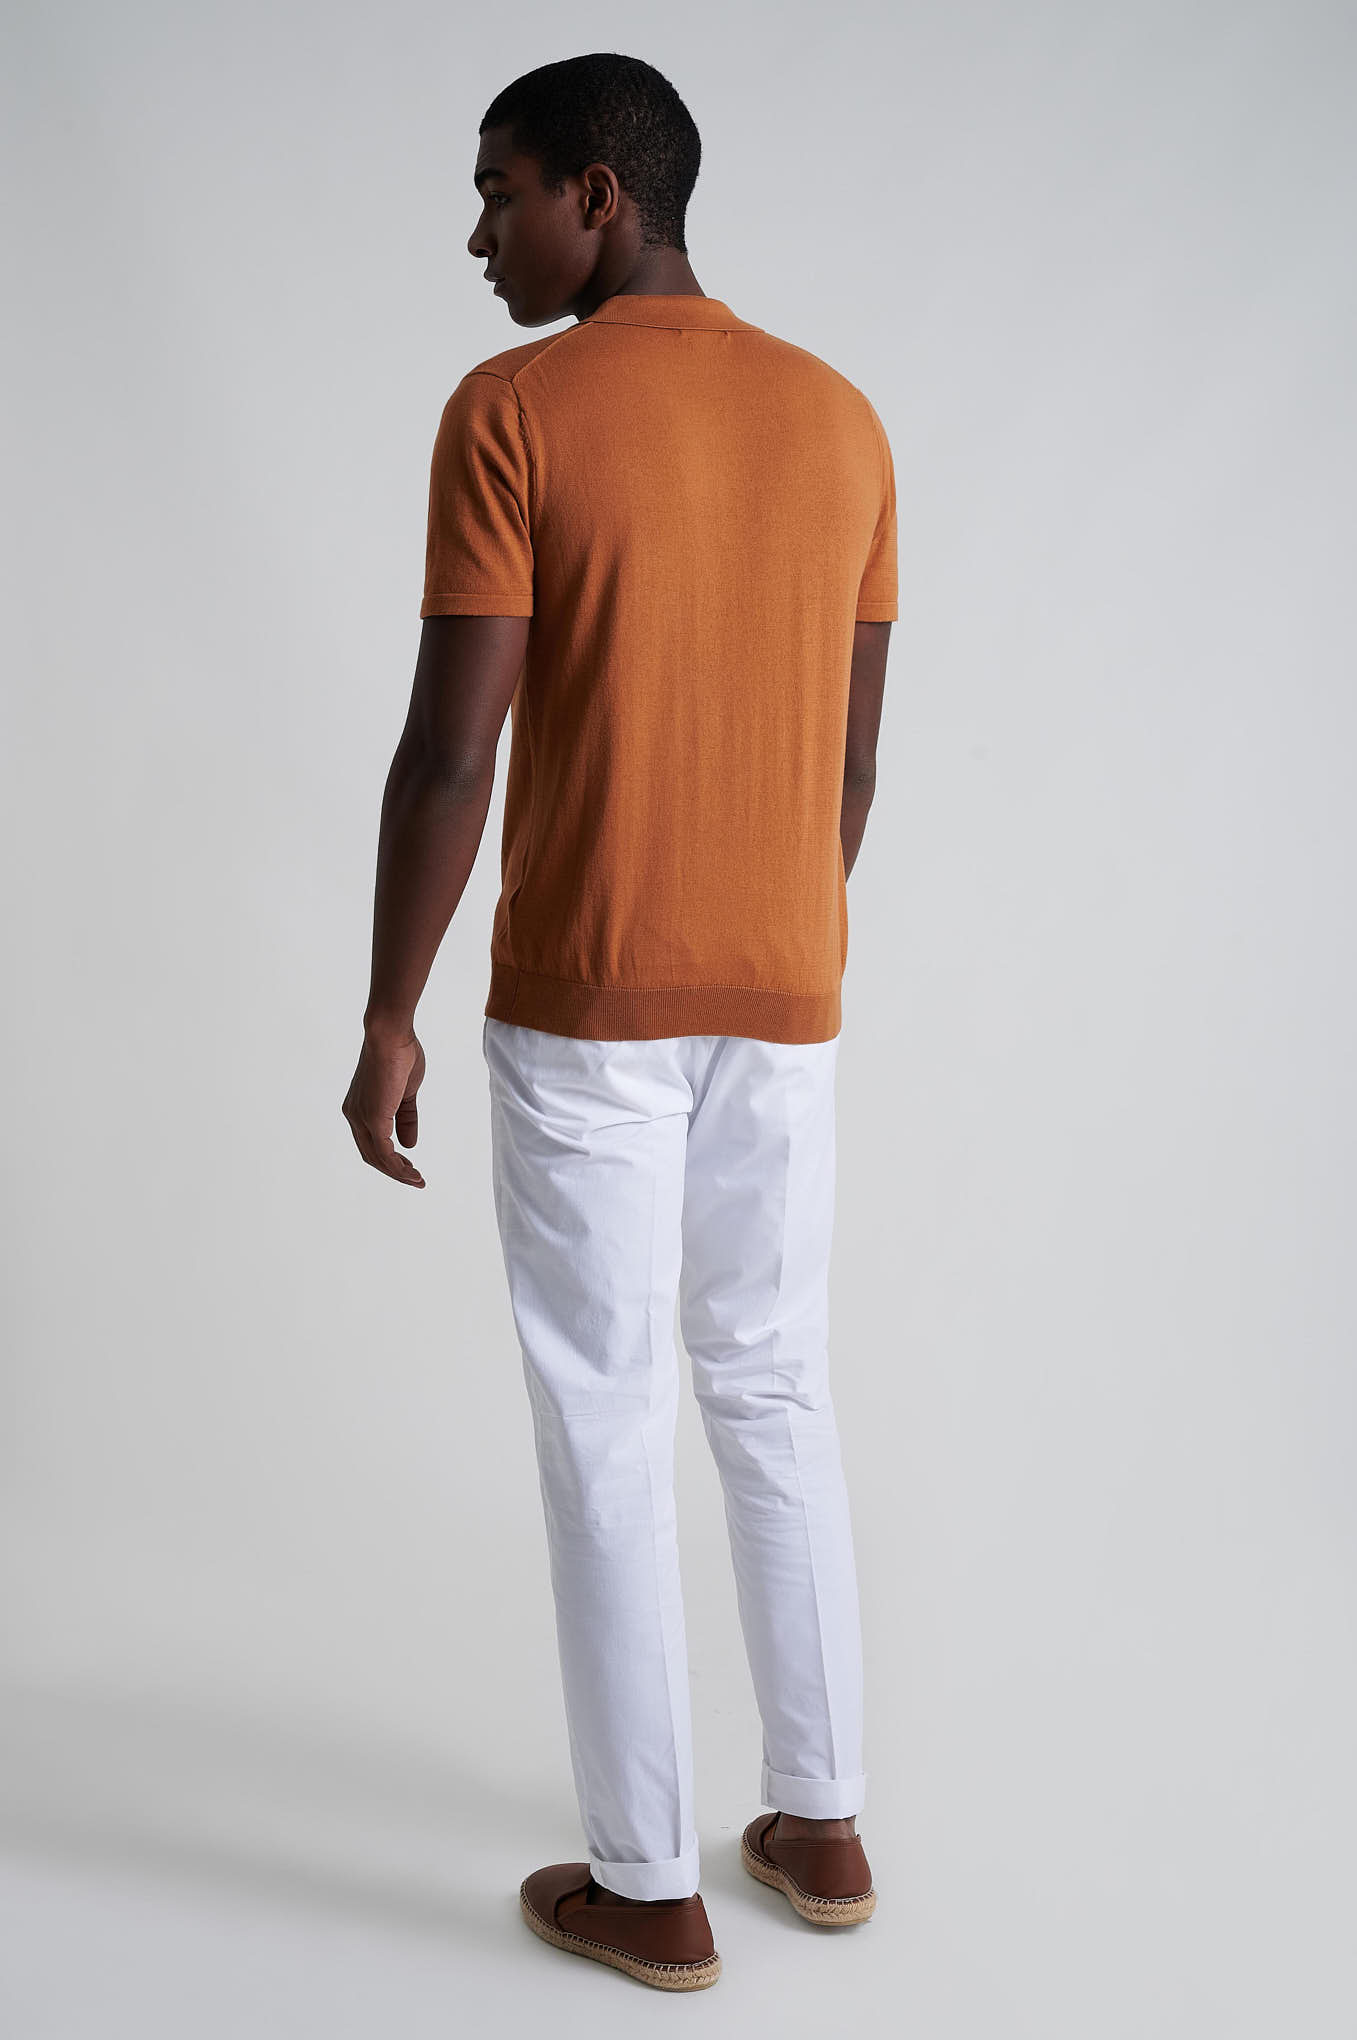 Chino Trousers White Casual Man